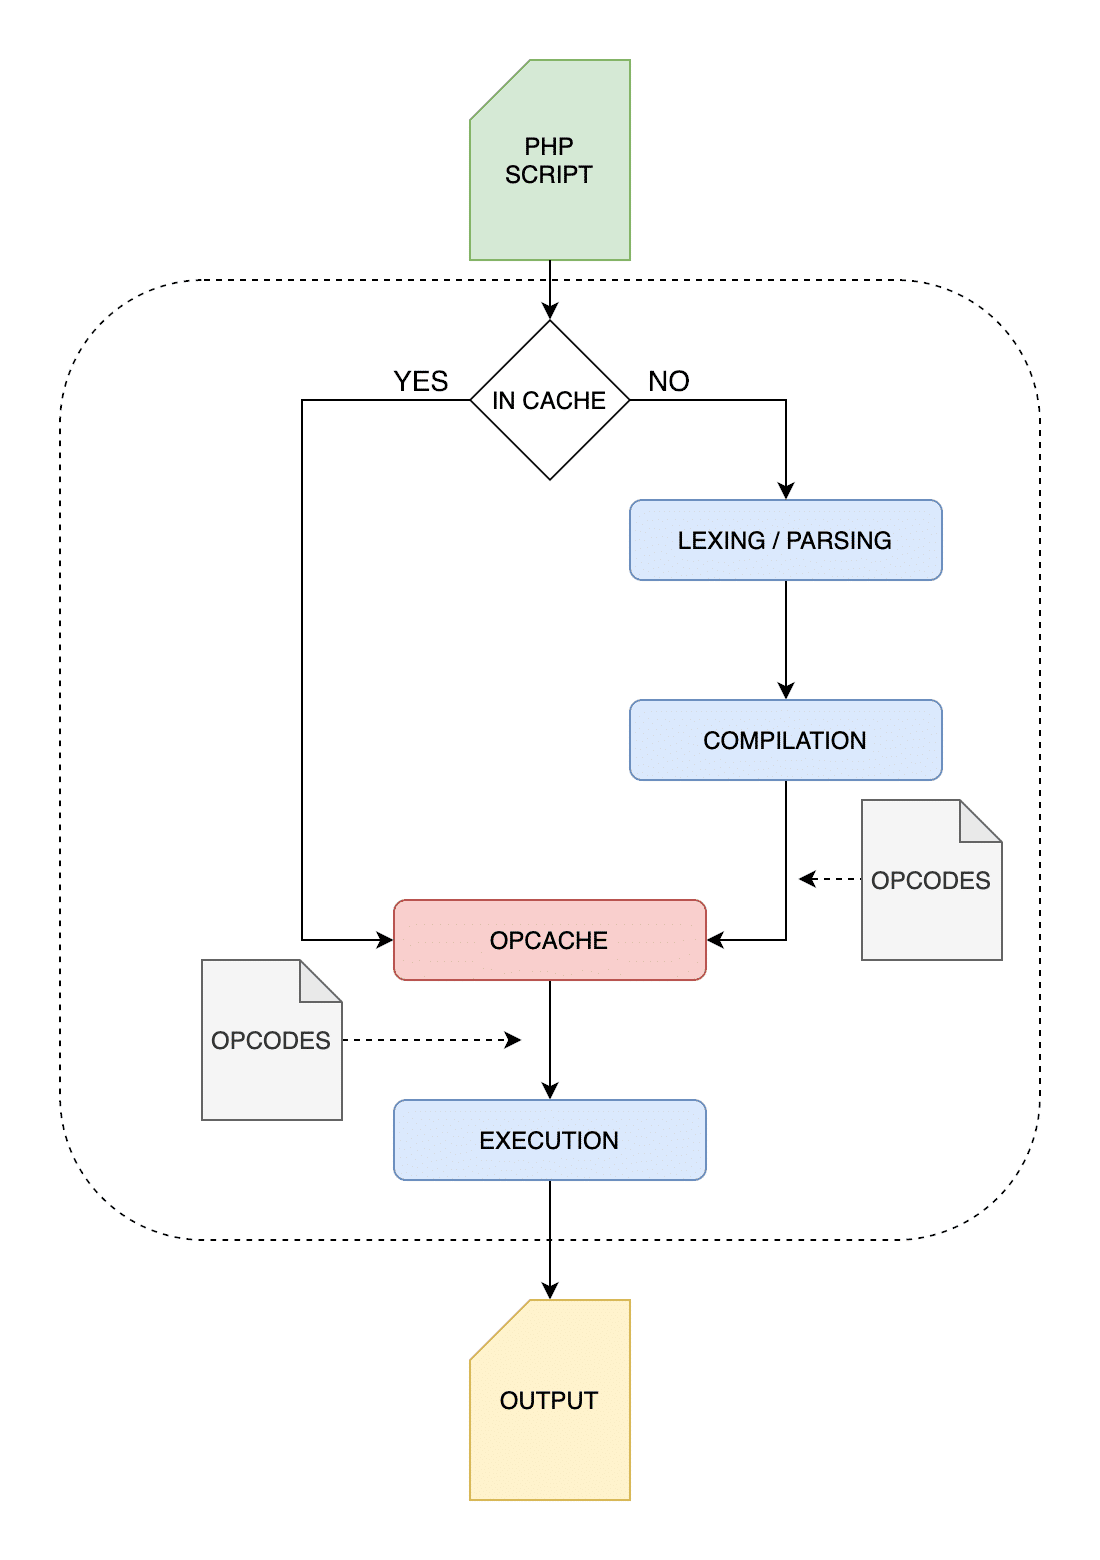 PHP execution process with OPcache enabled